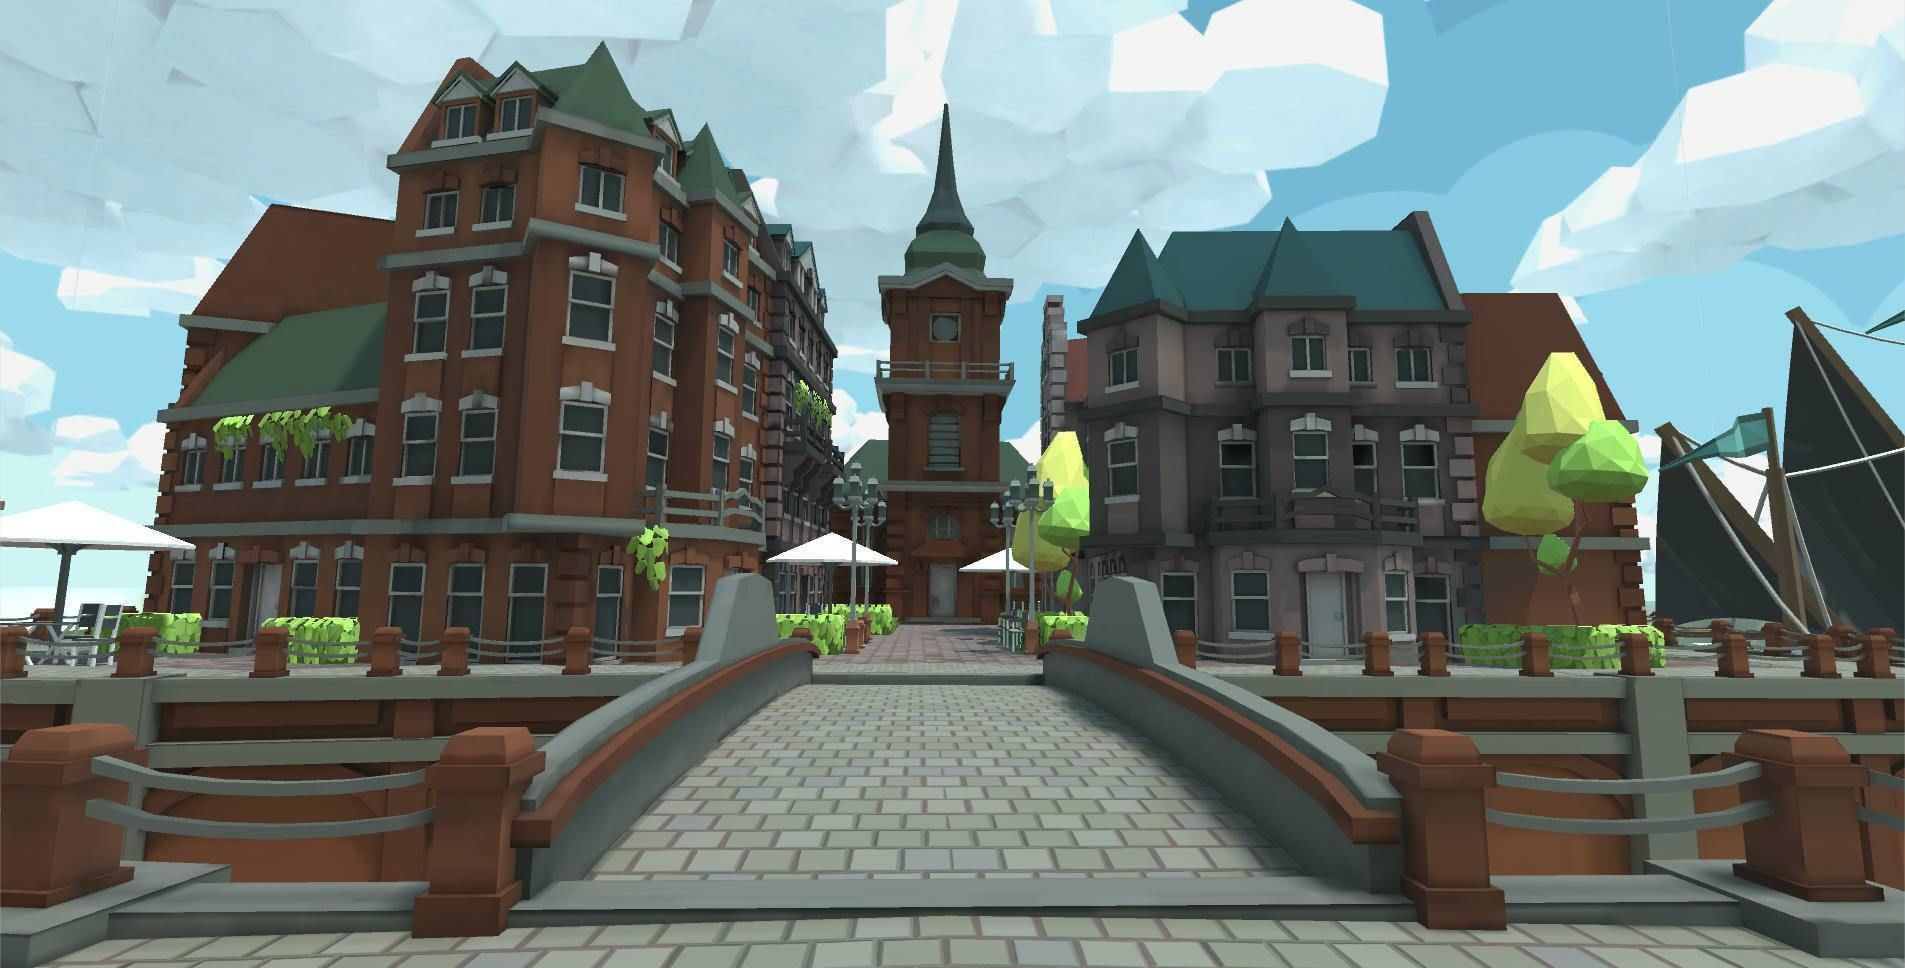 Low Poly Brick Buildings